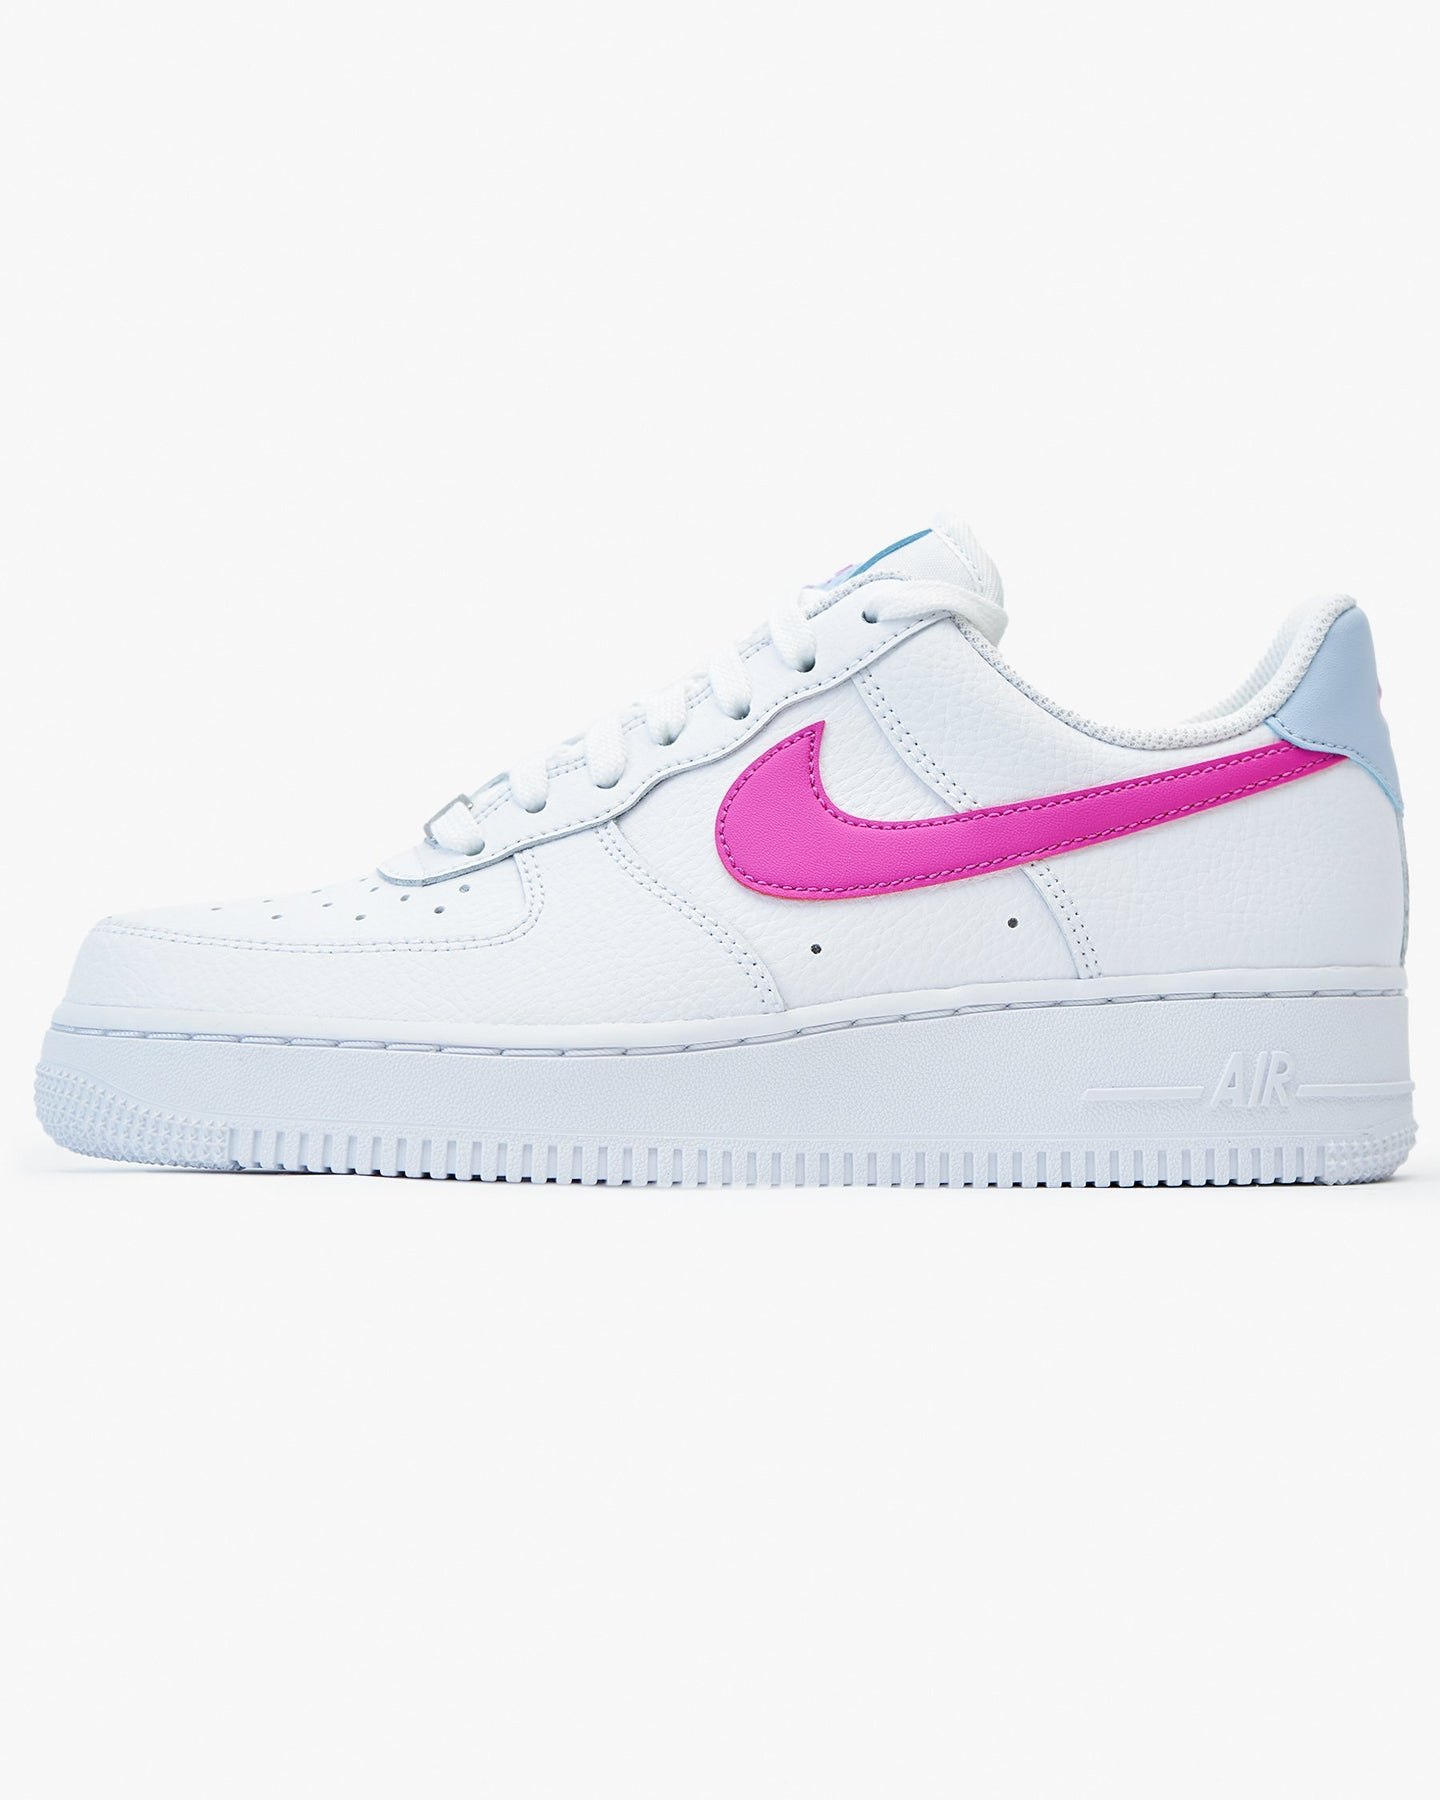 Nike Wmns Air Force 1 '07 - White / Hydrogen Blue / Fire Pink UK 3 CT43281013 Nike Trainers